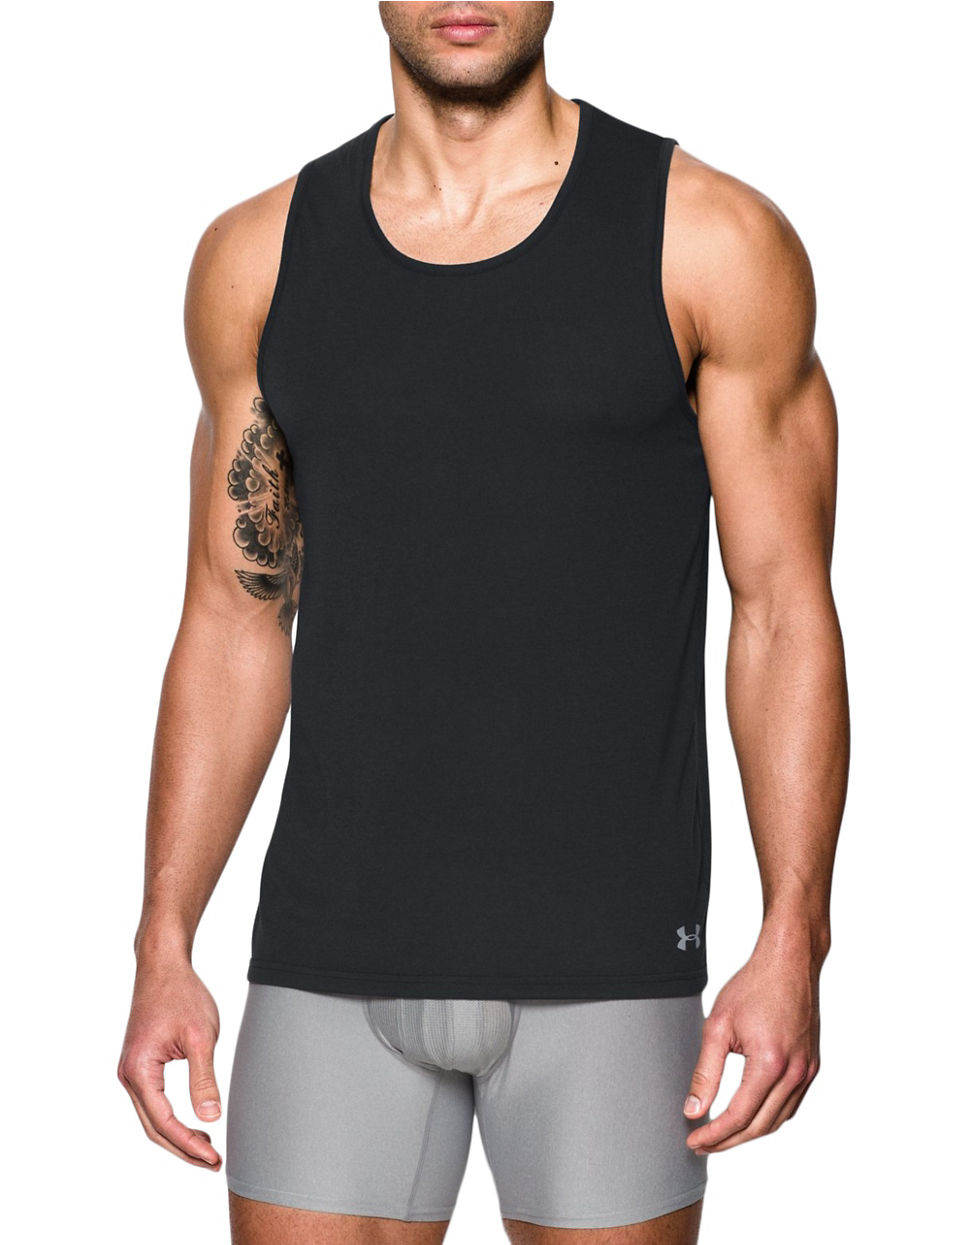 Under armour 2 pack undershirt tank in gray for men lyst for Mens under armour under shirt